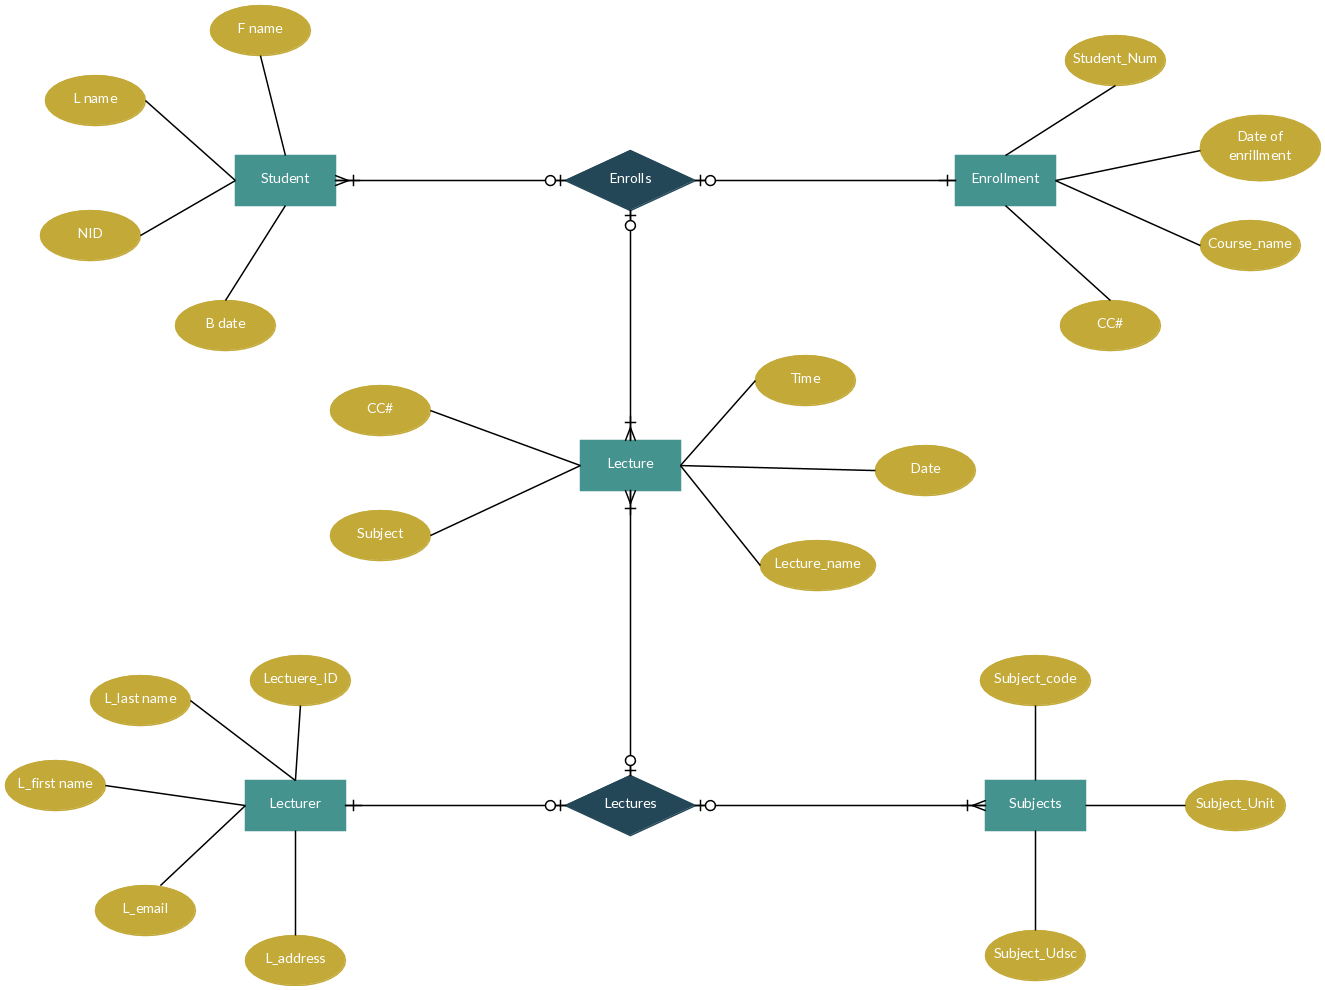 Entity Relationship Diagram For Collage Enrollment System